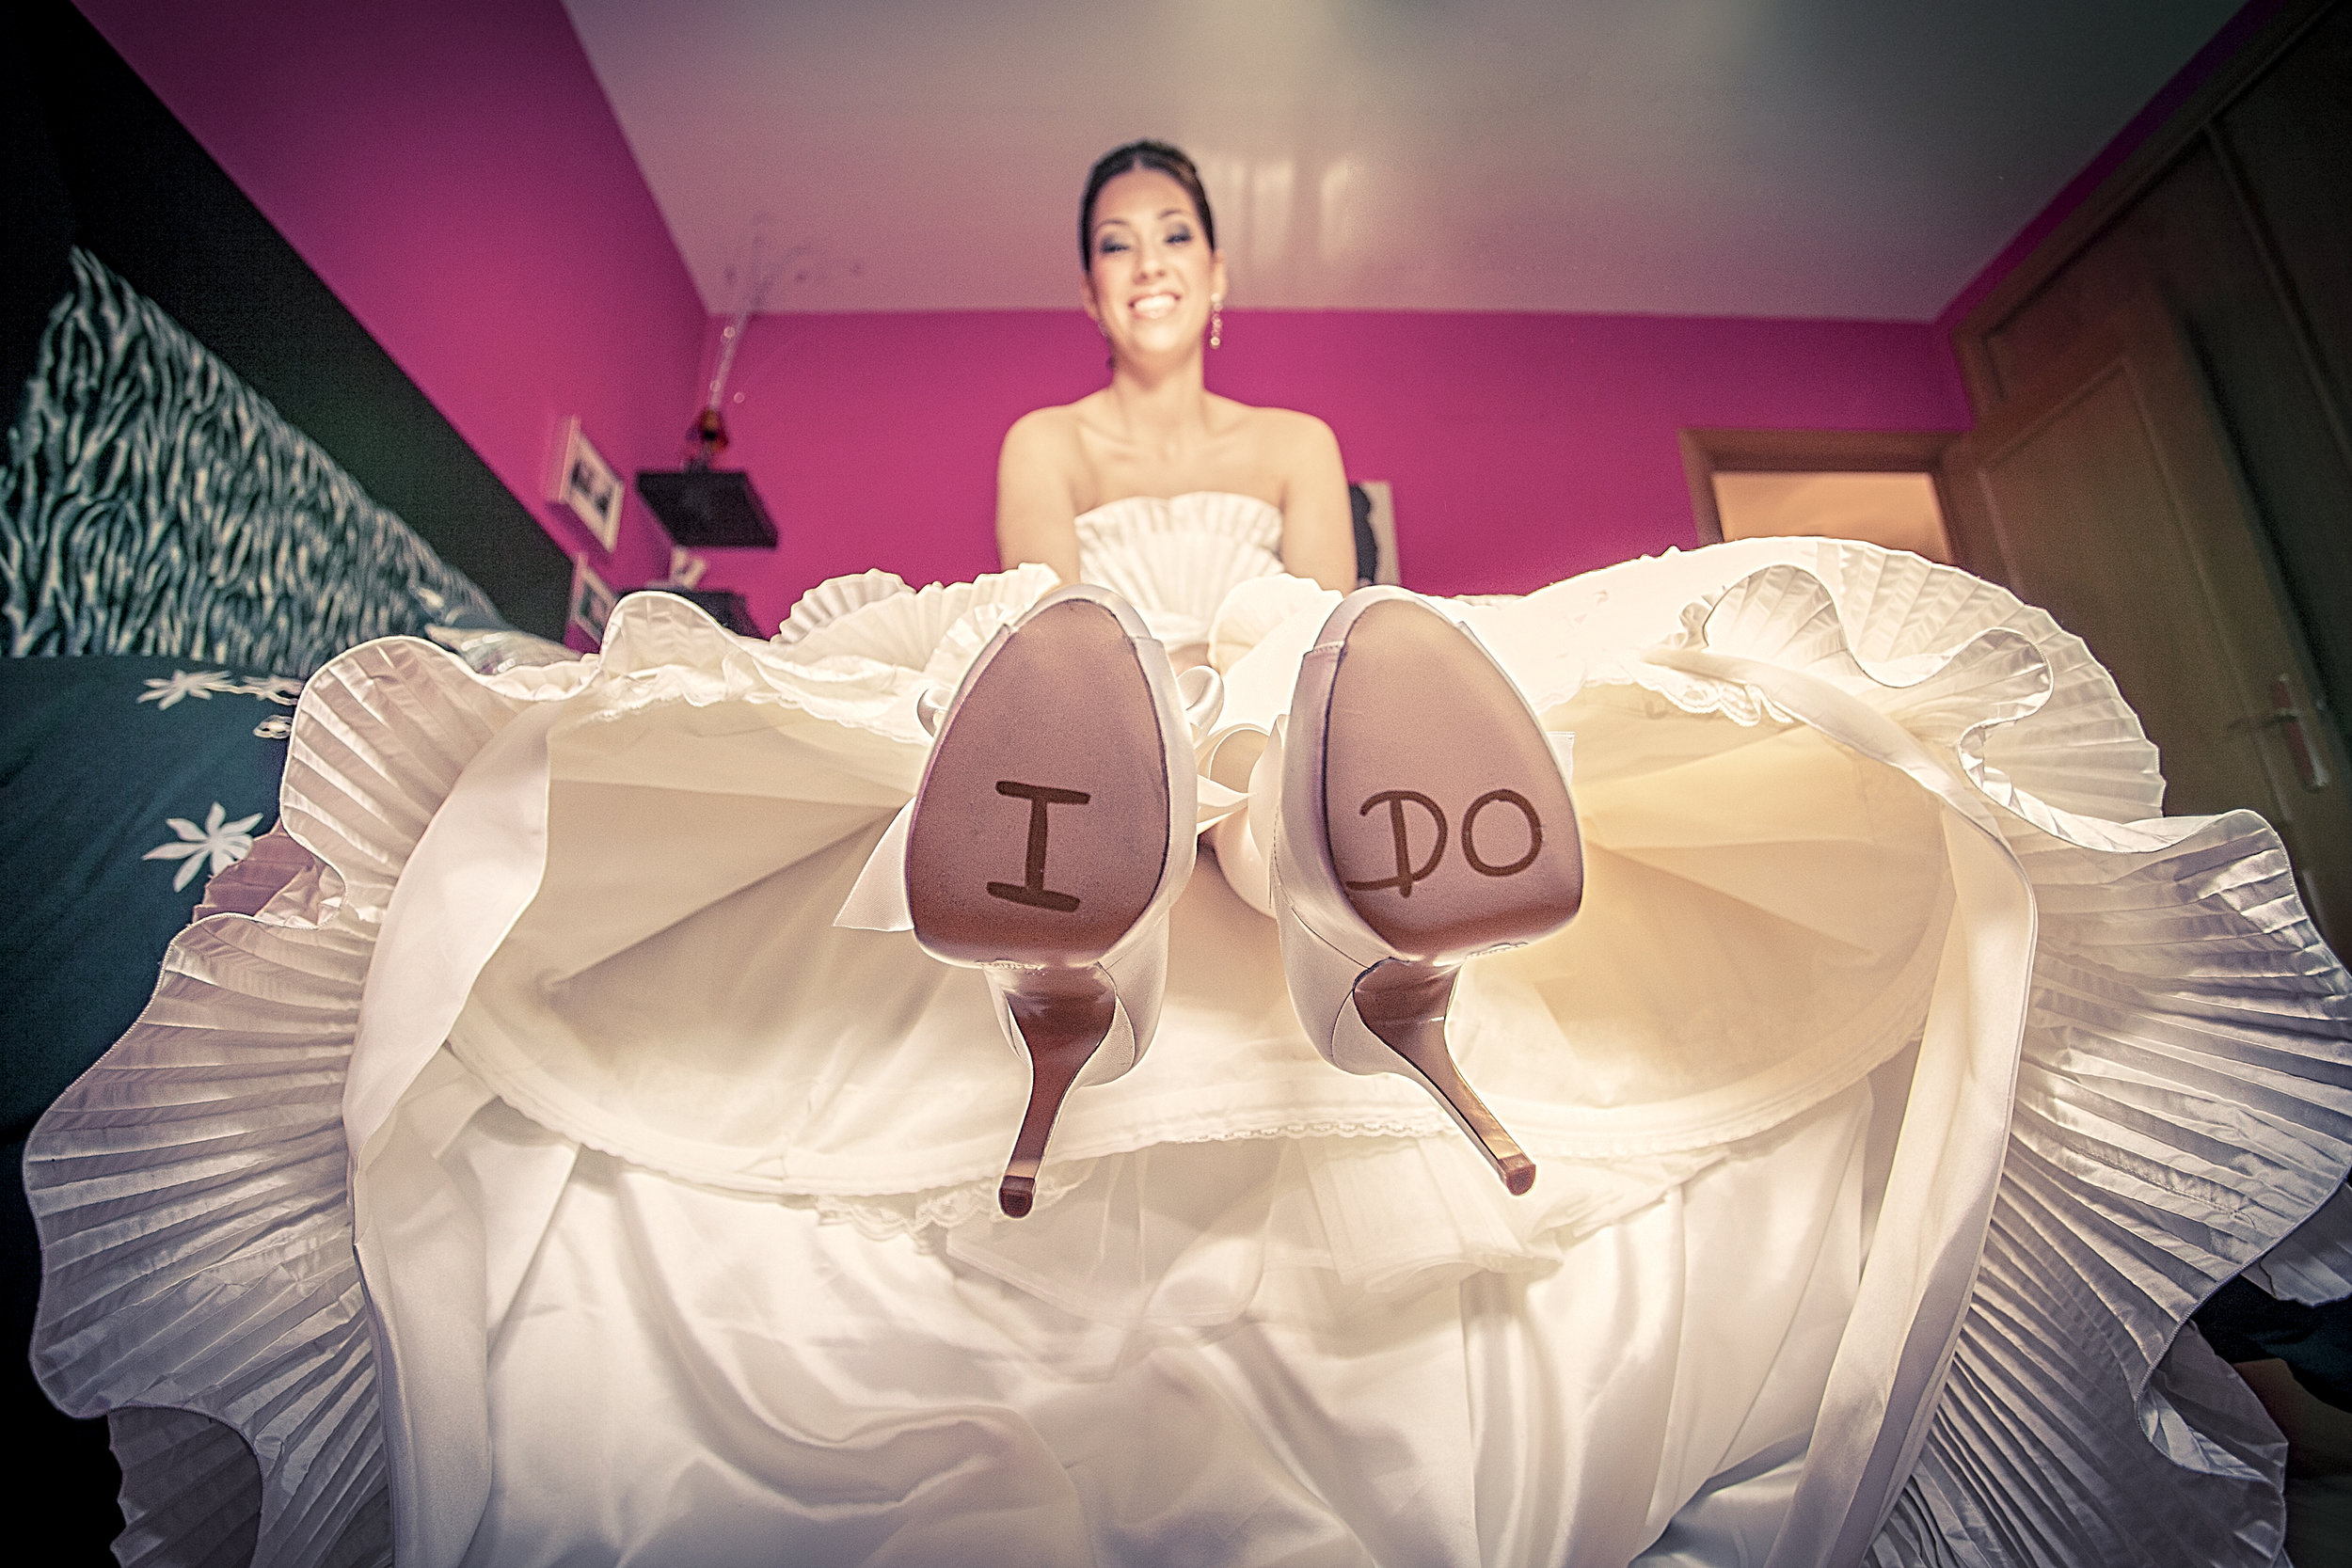 nn_wedding_fotografia_novia_i_do